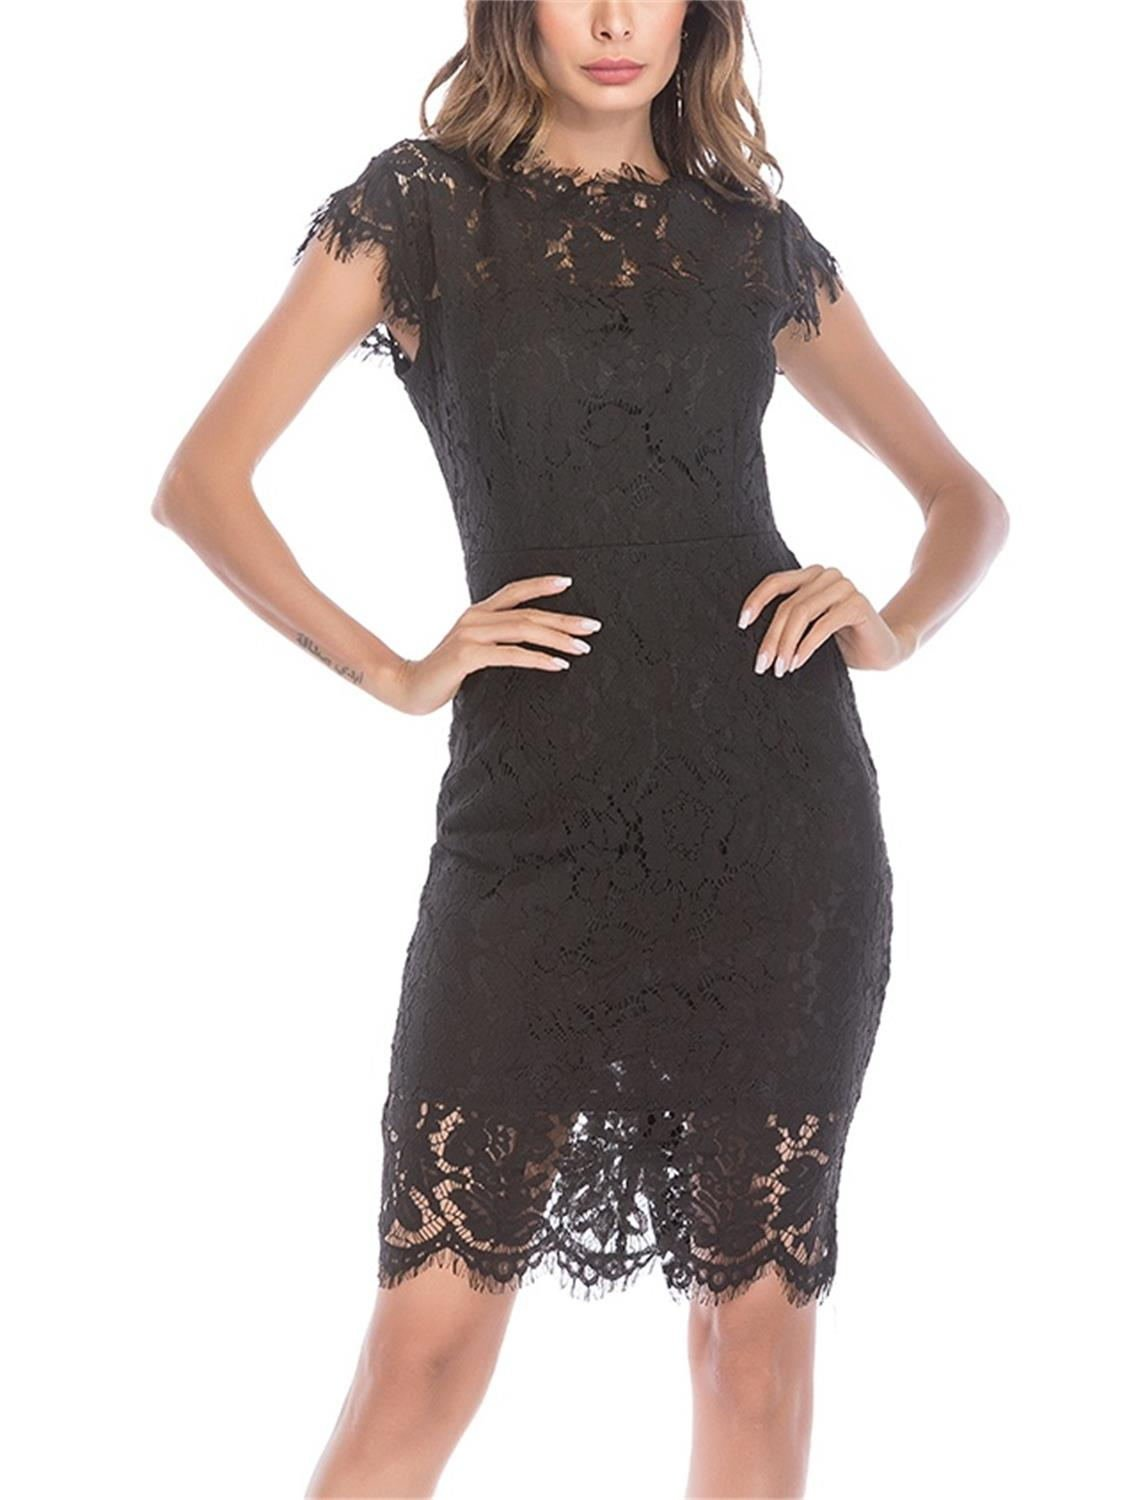 Women's Sleeveless Floral Lace Slim Evening Cocktail Mini Dress for Party DM261 (M, Black)